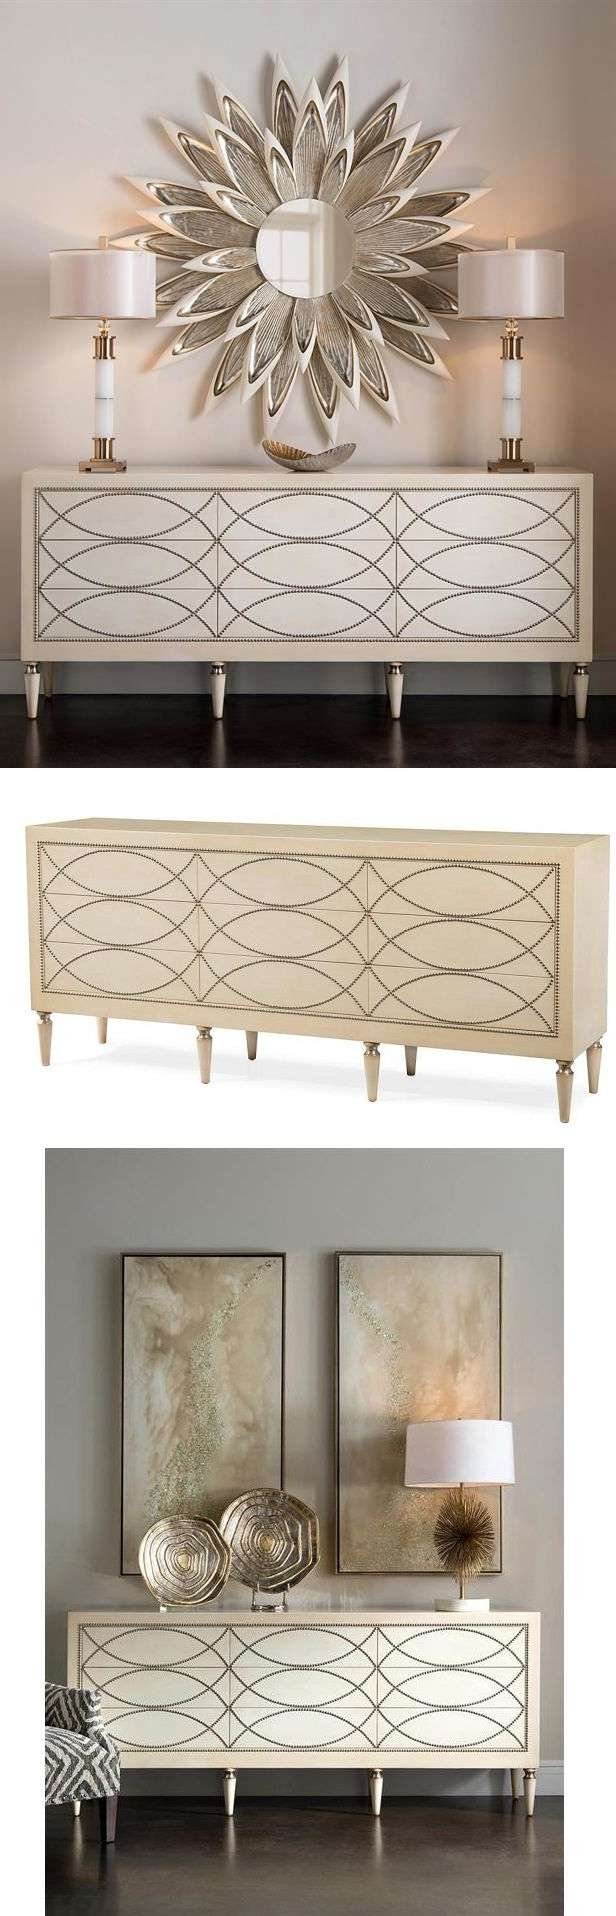 Charming Dining Room Sideboard Beautiful Servers Sideboards And With Small Dining Room Sideboards (View 11 of 20)